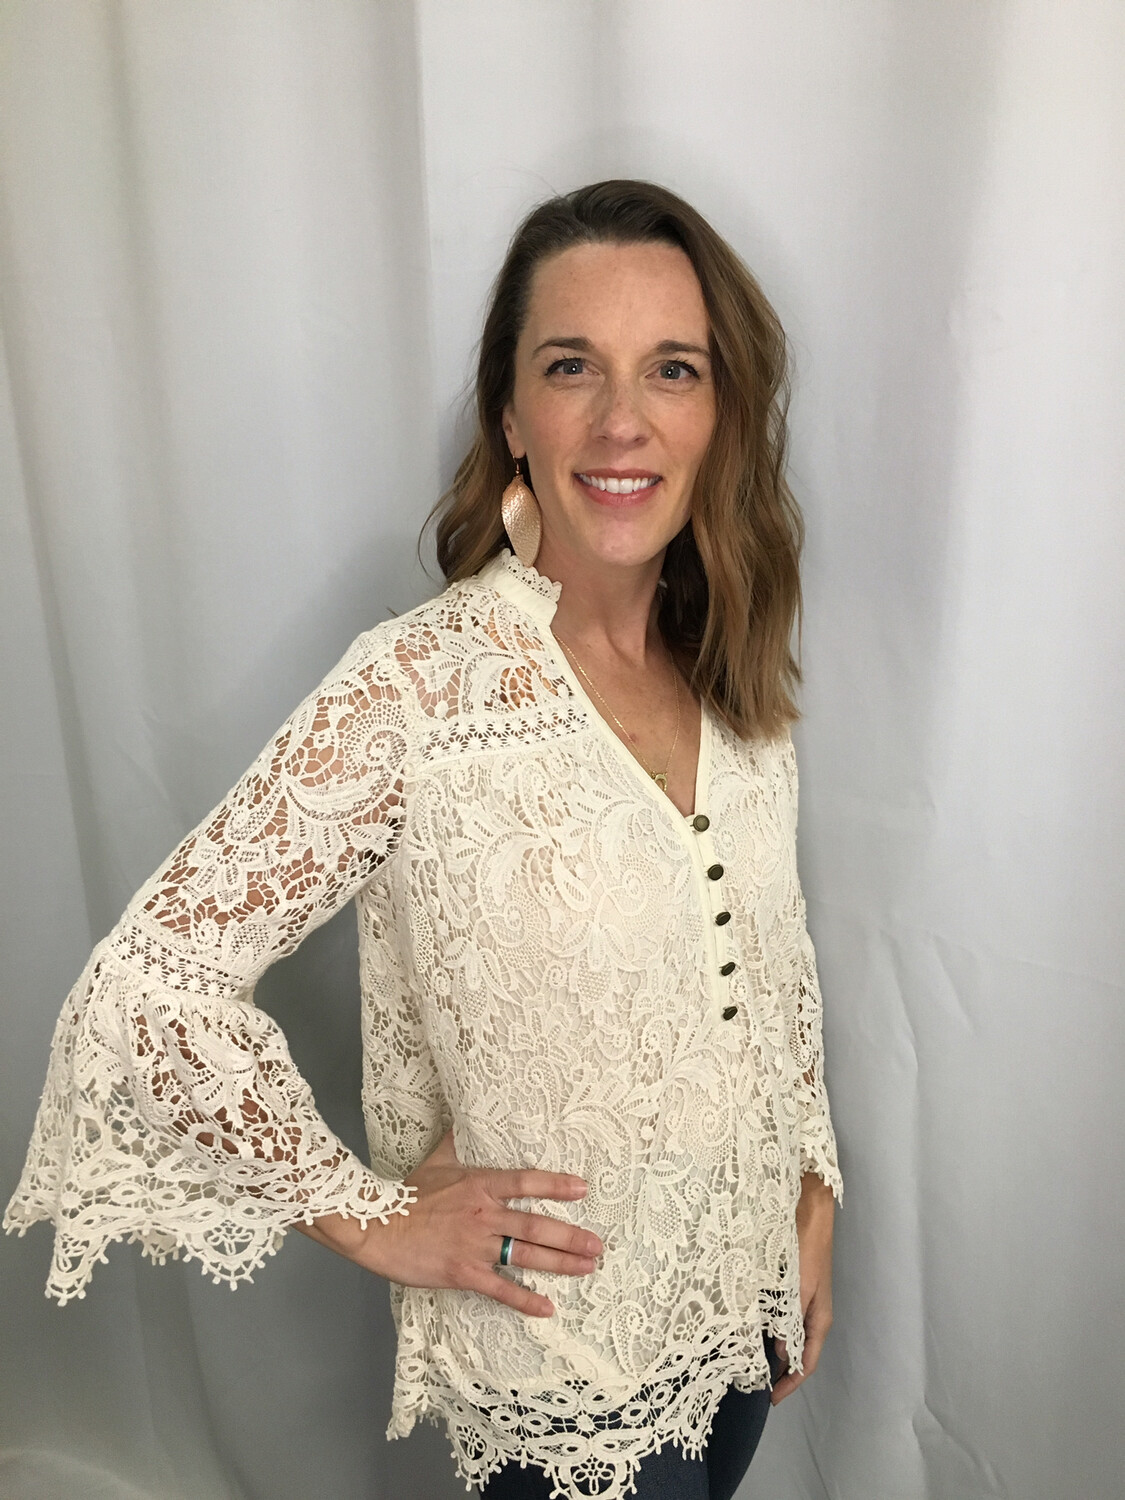 Maeve Cream Lace Top with Button Accent - Size 0